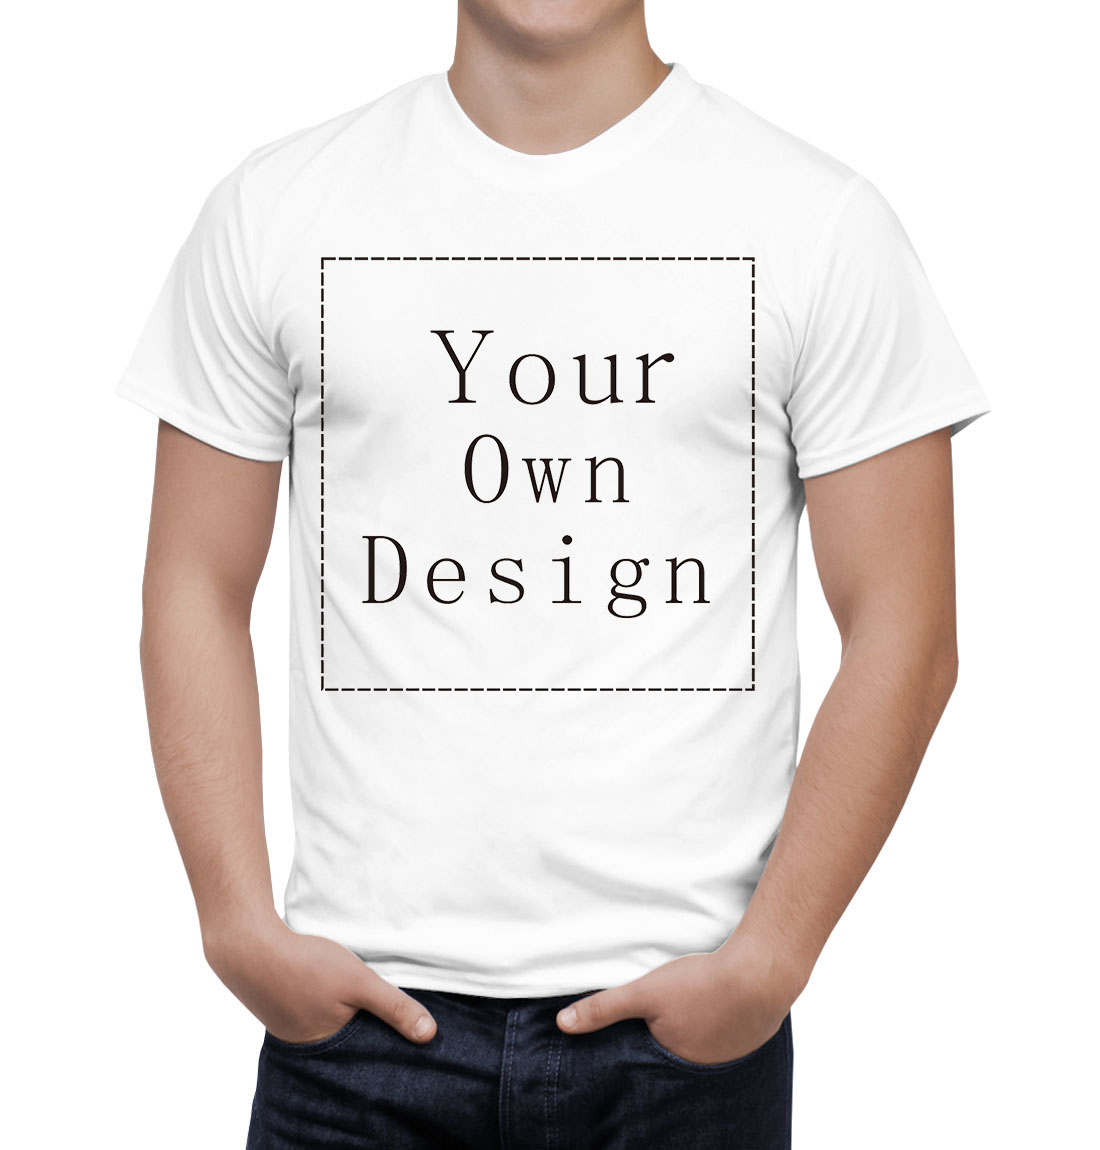 Design your own eco-friendly t-shirt - Customized Men S T Shirt Print Your Own Design High Quality Fast Ship China Mainland